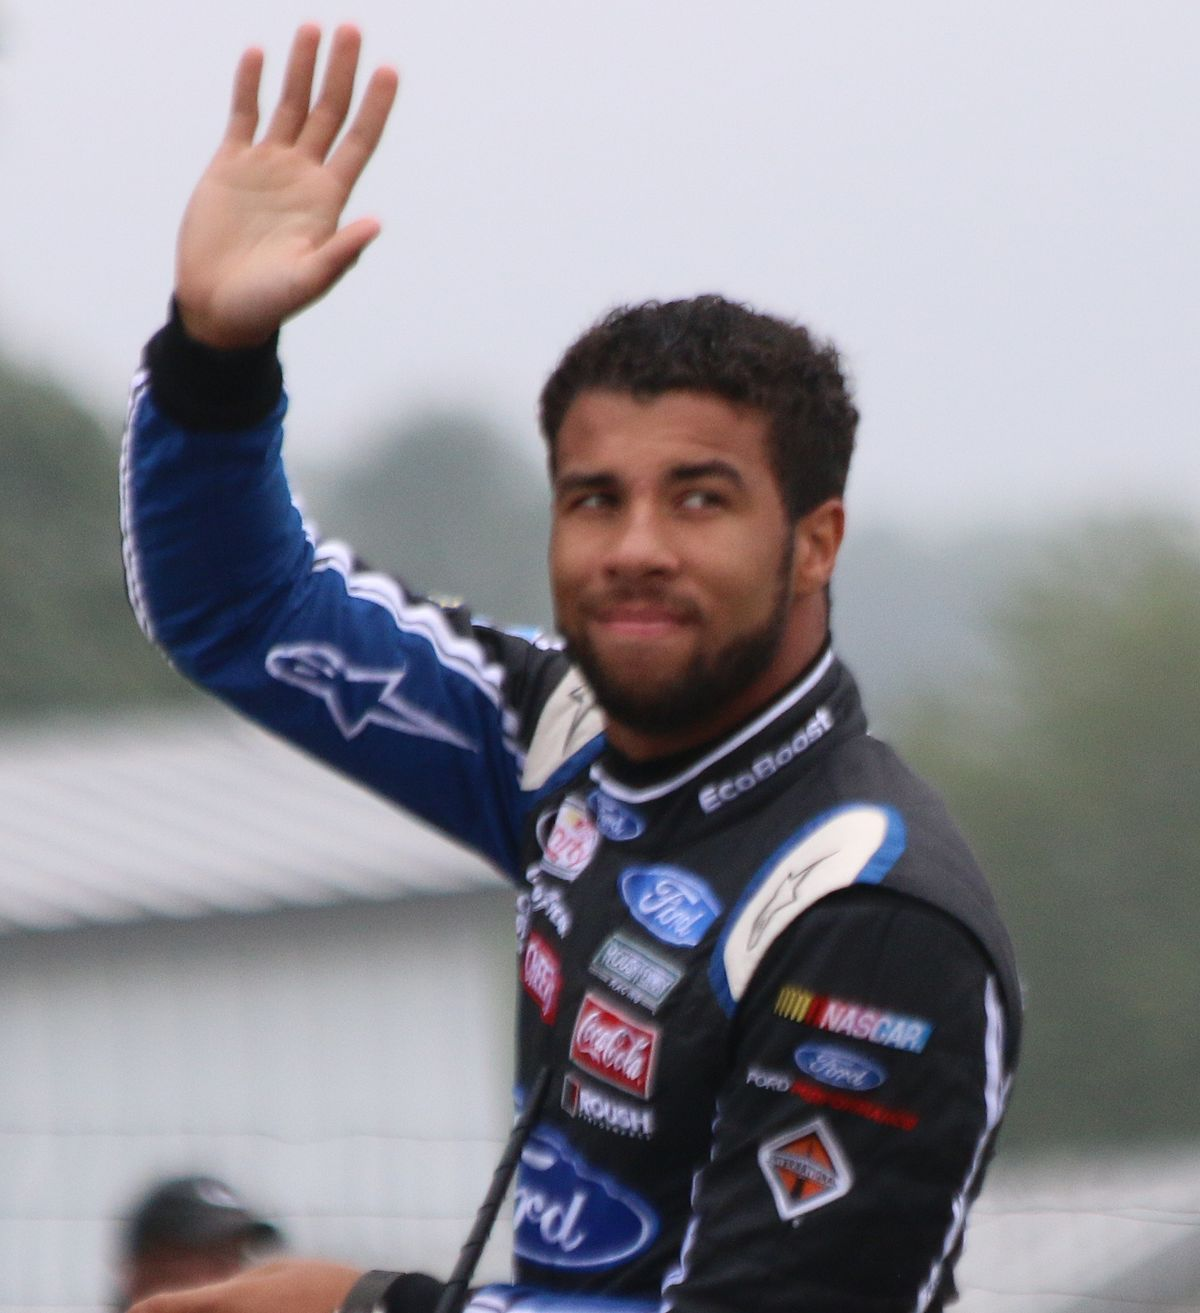 Darrell Wallace Jr Wikipedia